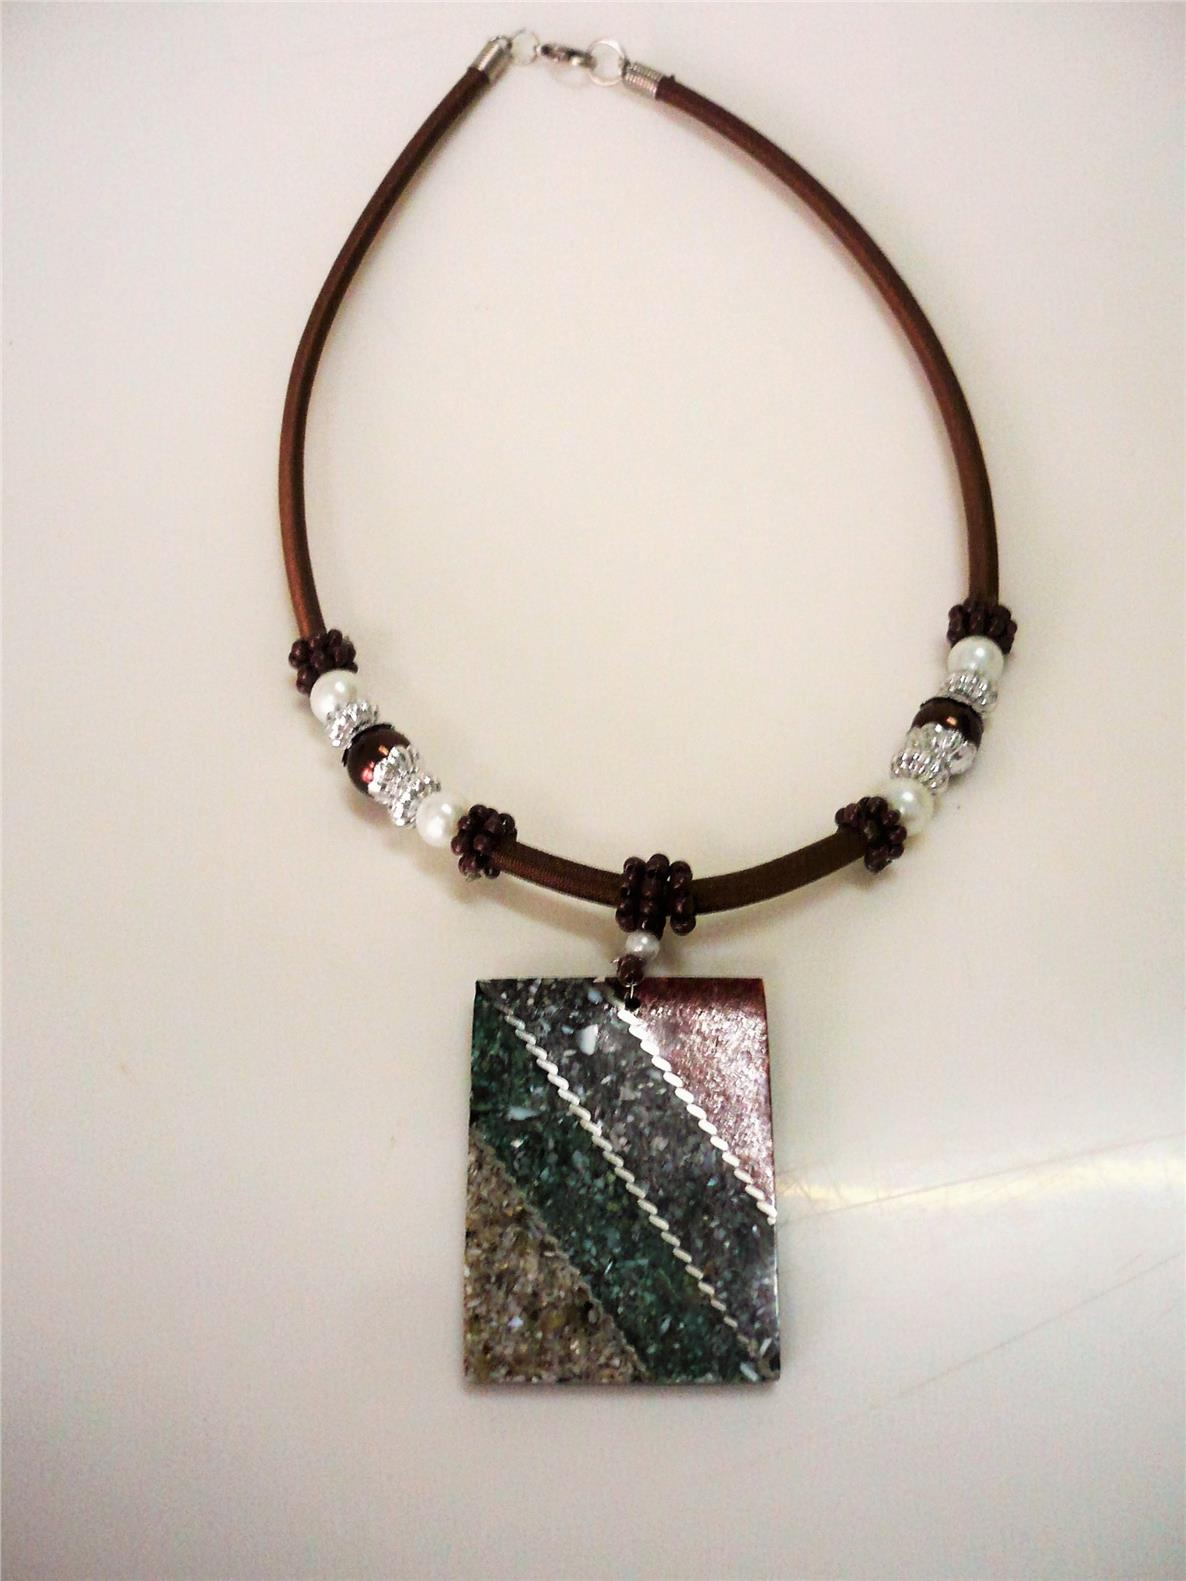 Brown waxed cord choker with beads and a rectangular-shaped pendant